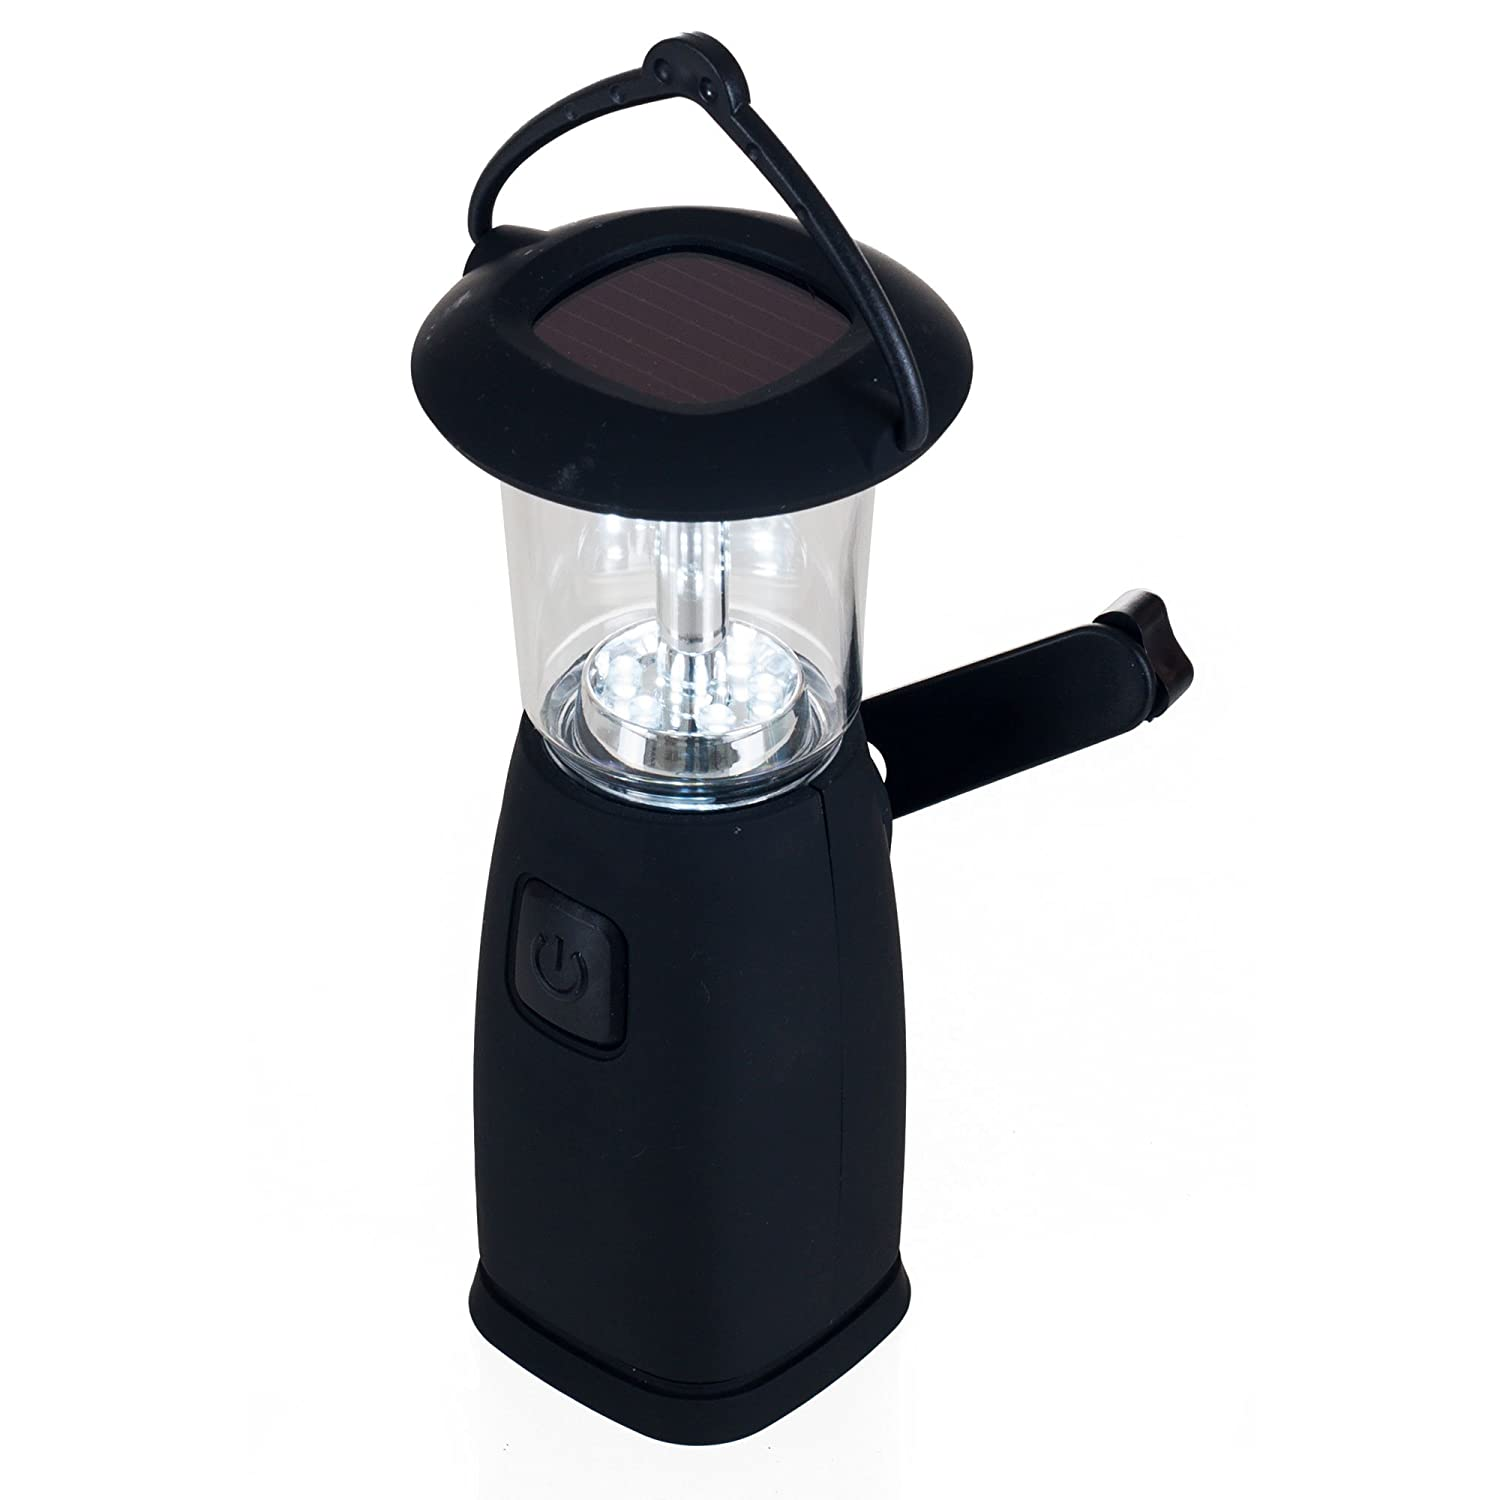 Top 10 Best Solar Powered Camping Lanterns 2016 2017 On